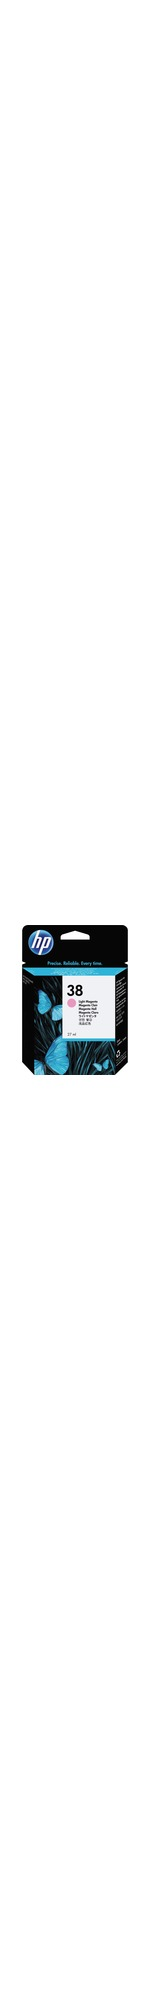 HP C9419A Ink Cartridge - Light Magenta